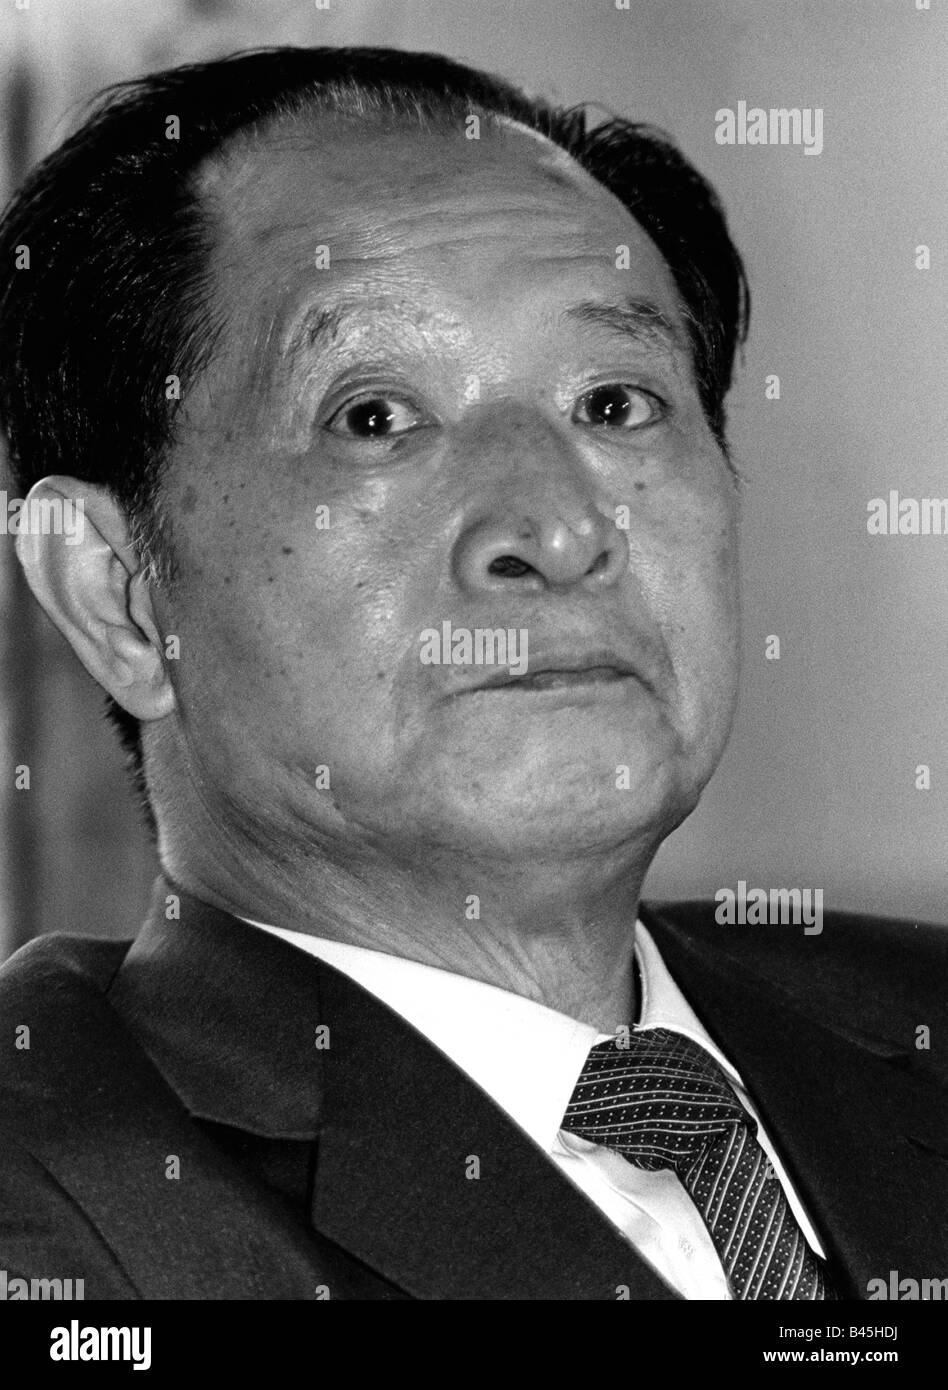 Hu Yaobang, 20.11.1915 - 15.4.1989, Chinese poltitician, 1980 - 1987 Premier of the State Council, portrait, state - Stock Image